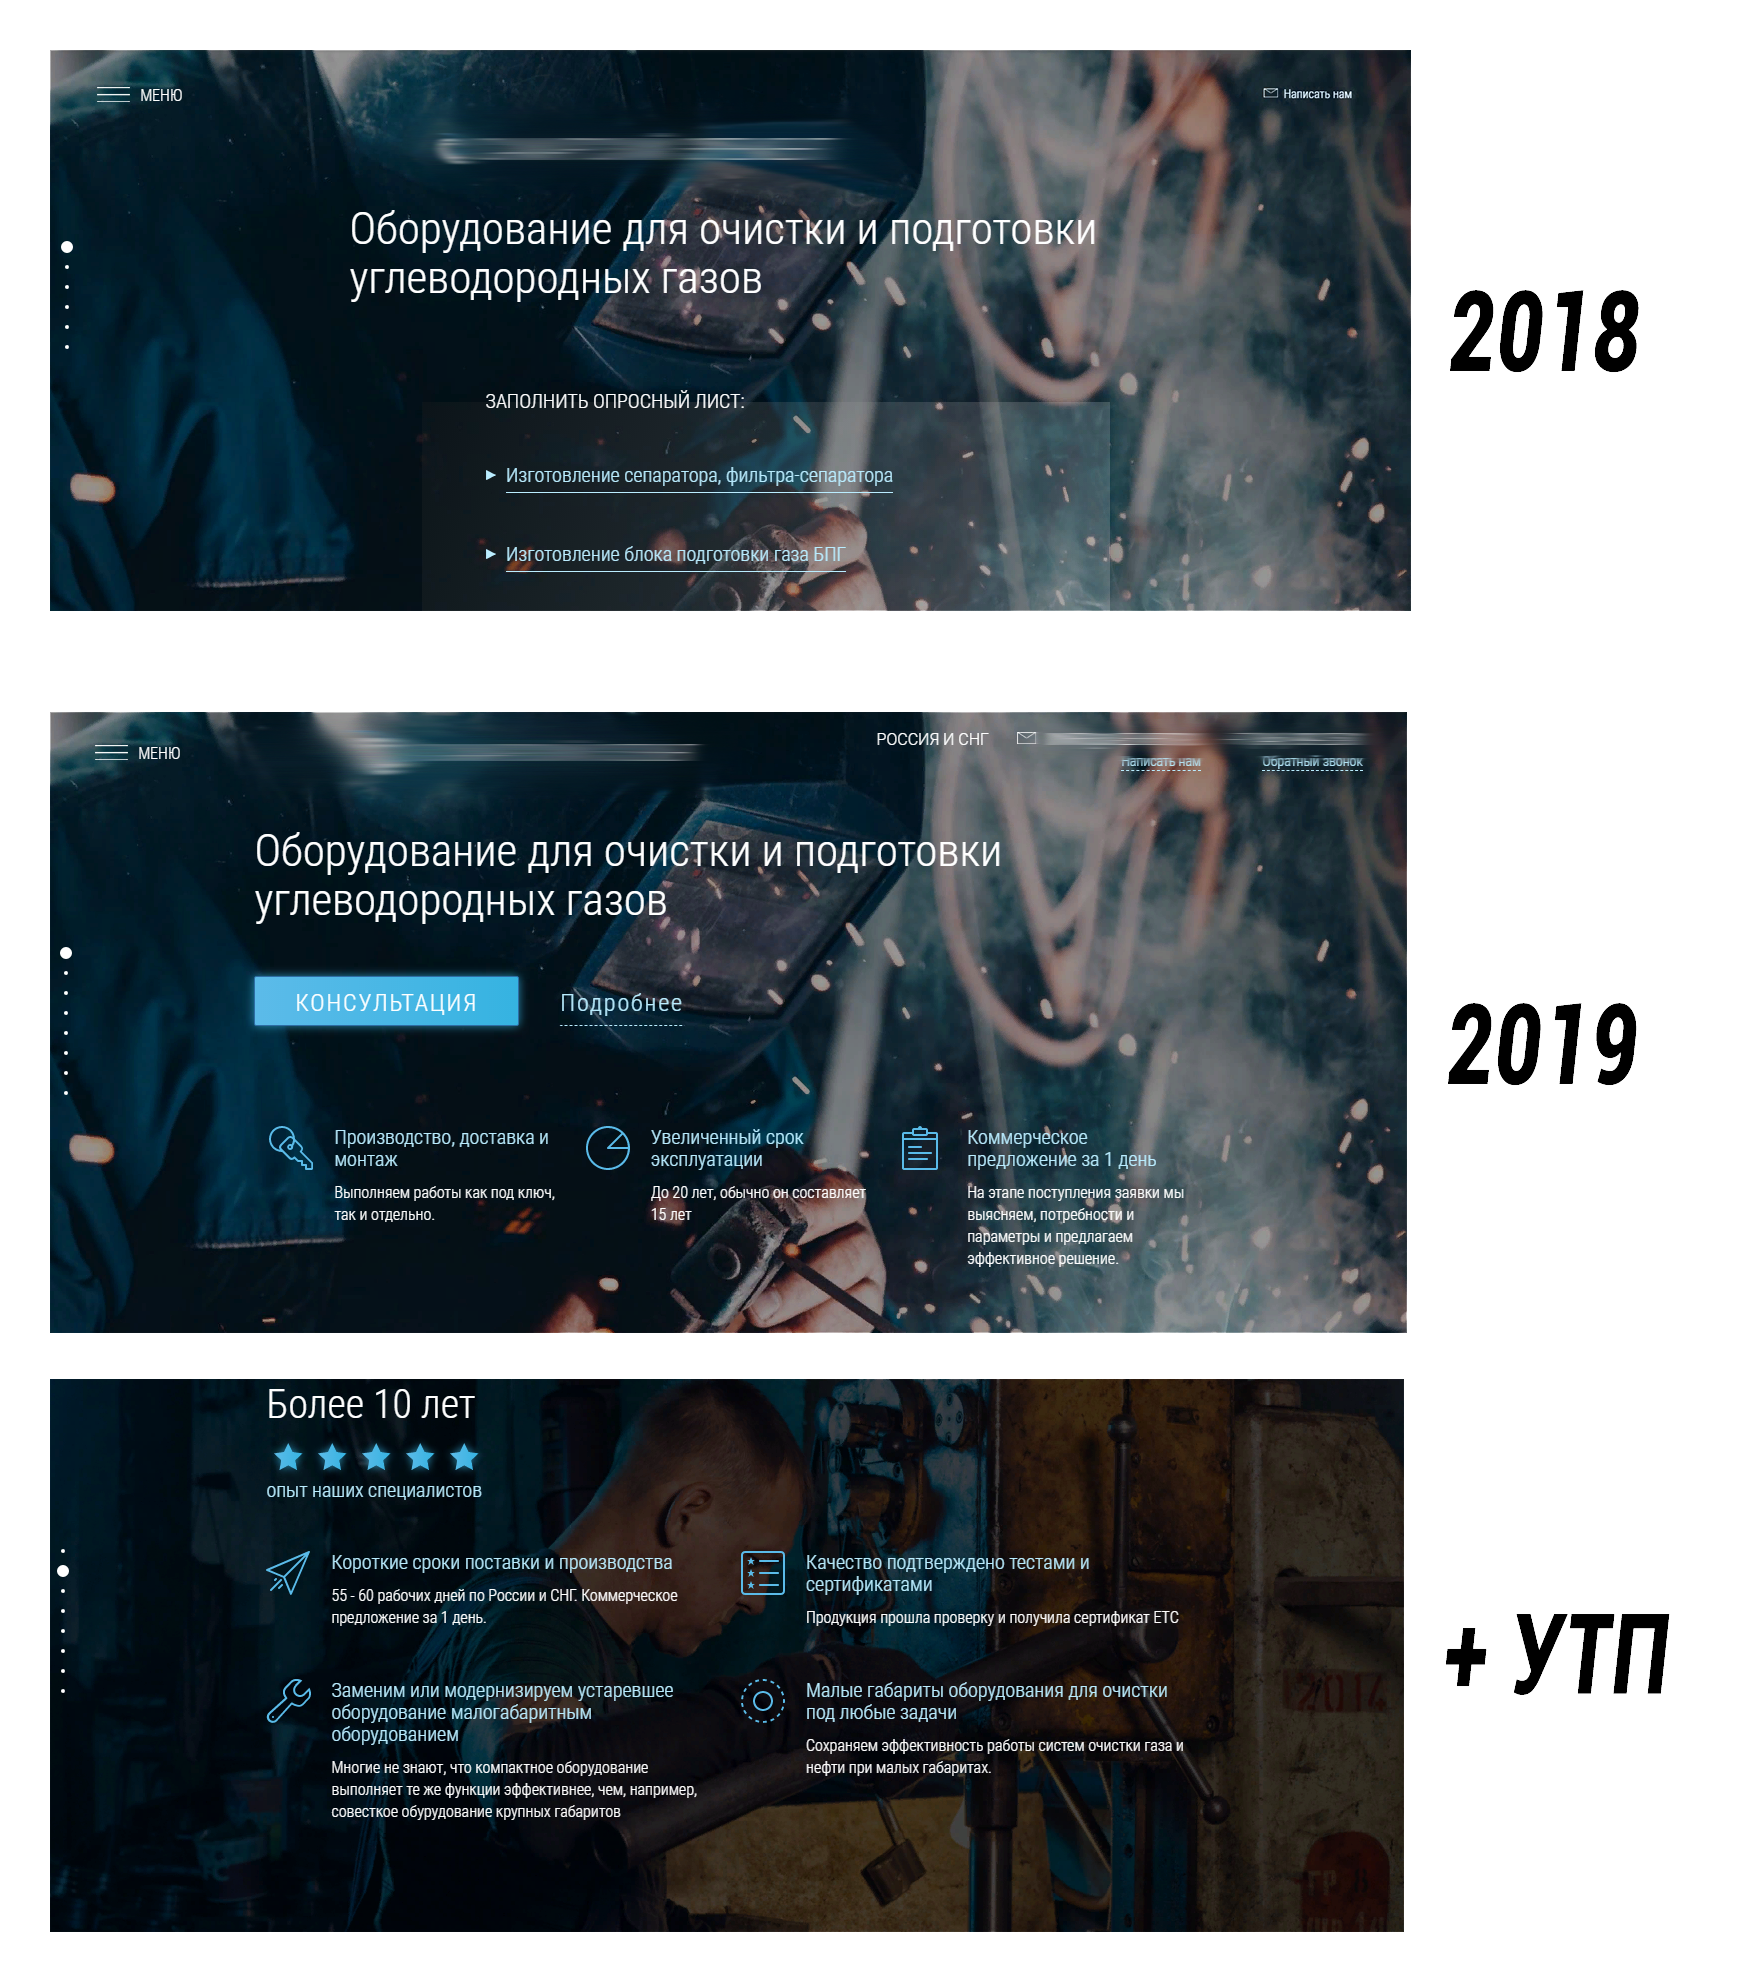 Site versions in 2018 and 2019